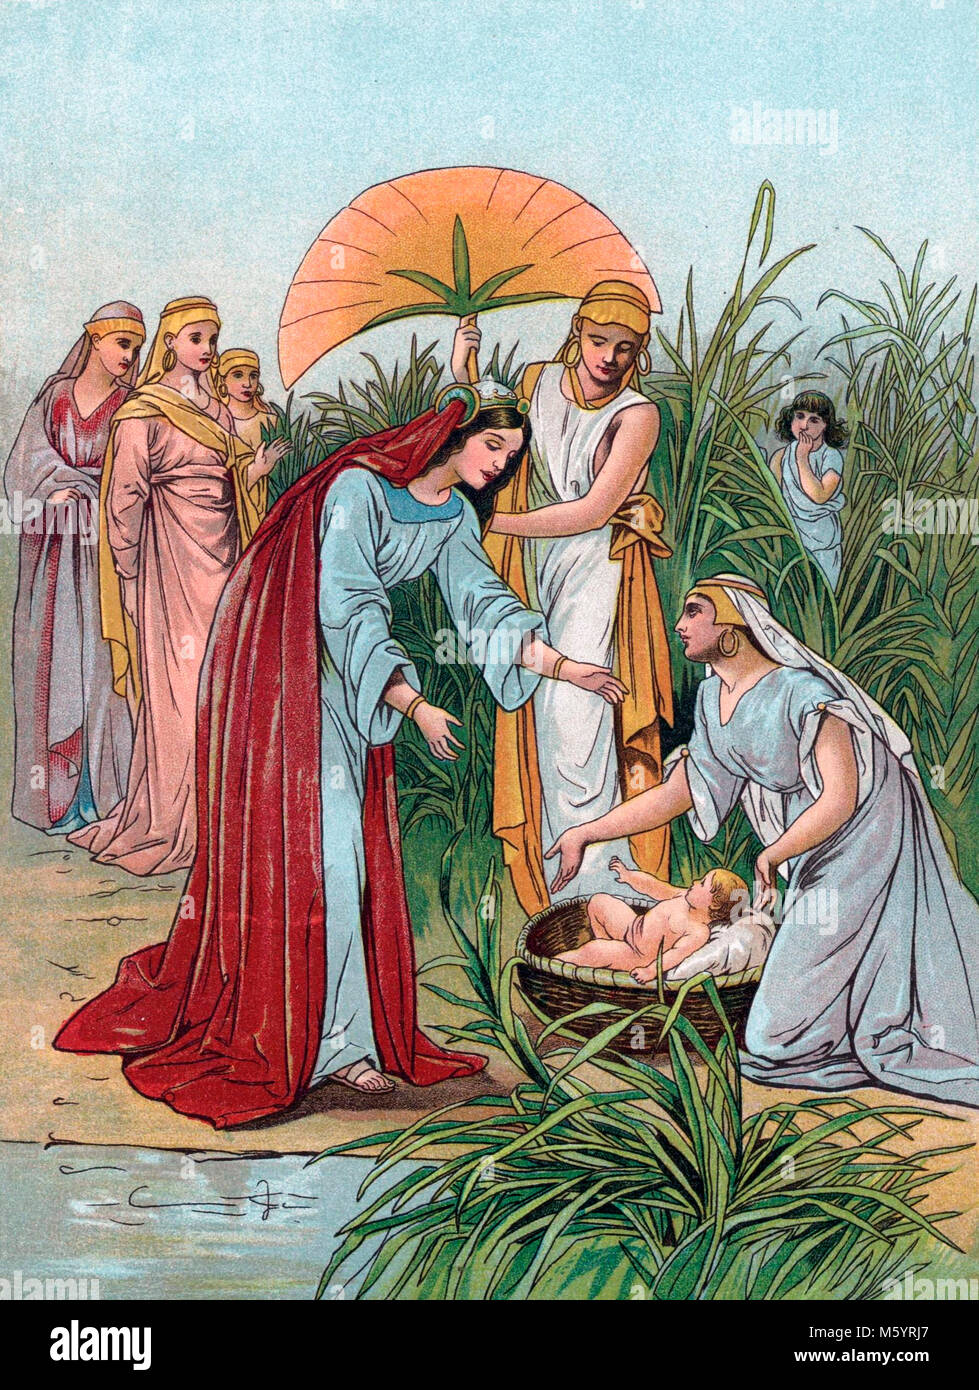 The finding of Moses in a basket by the Pharoah's daughter (Book of Exodus). Illustration from 'A Child's - Stock Image